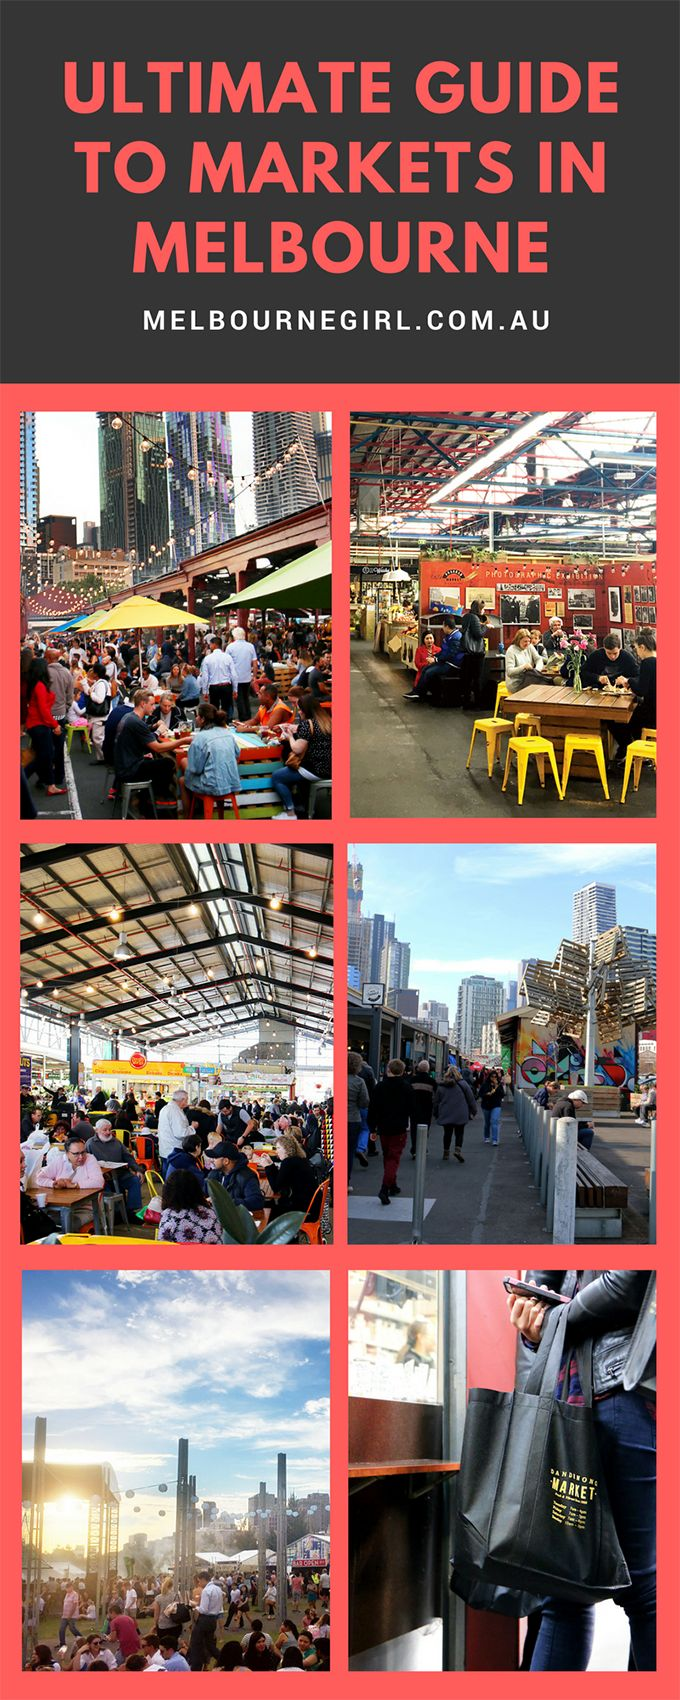 Ultimate Guide to Markets in Melbourne